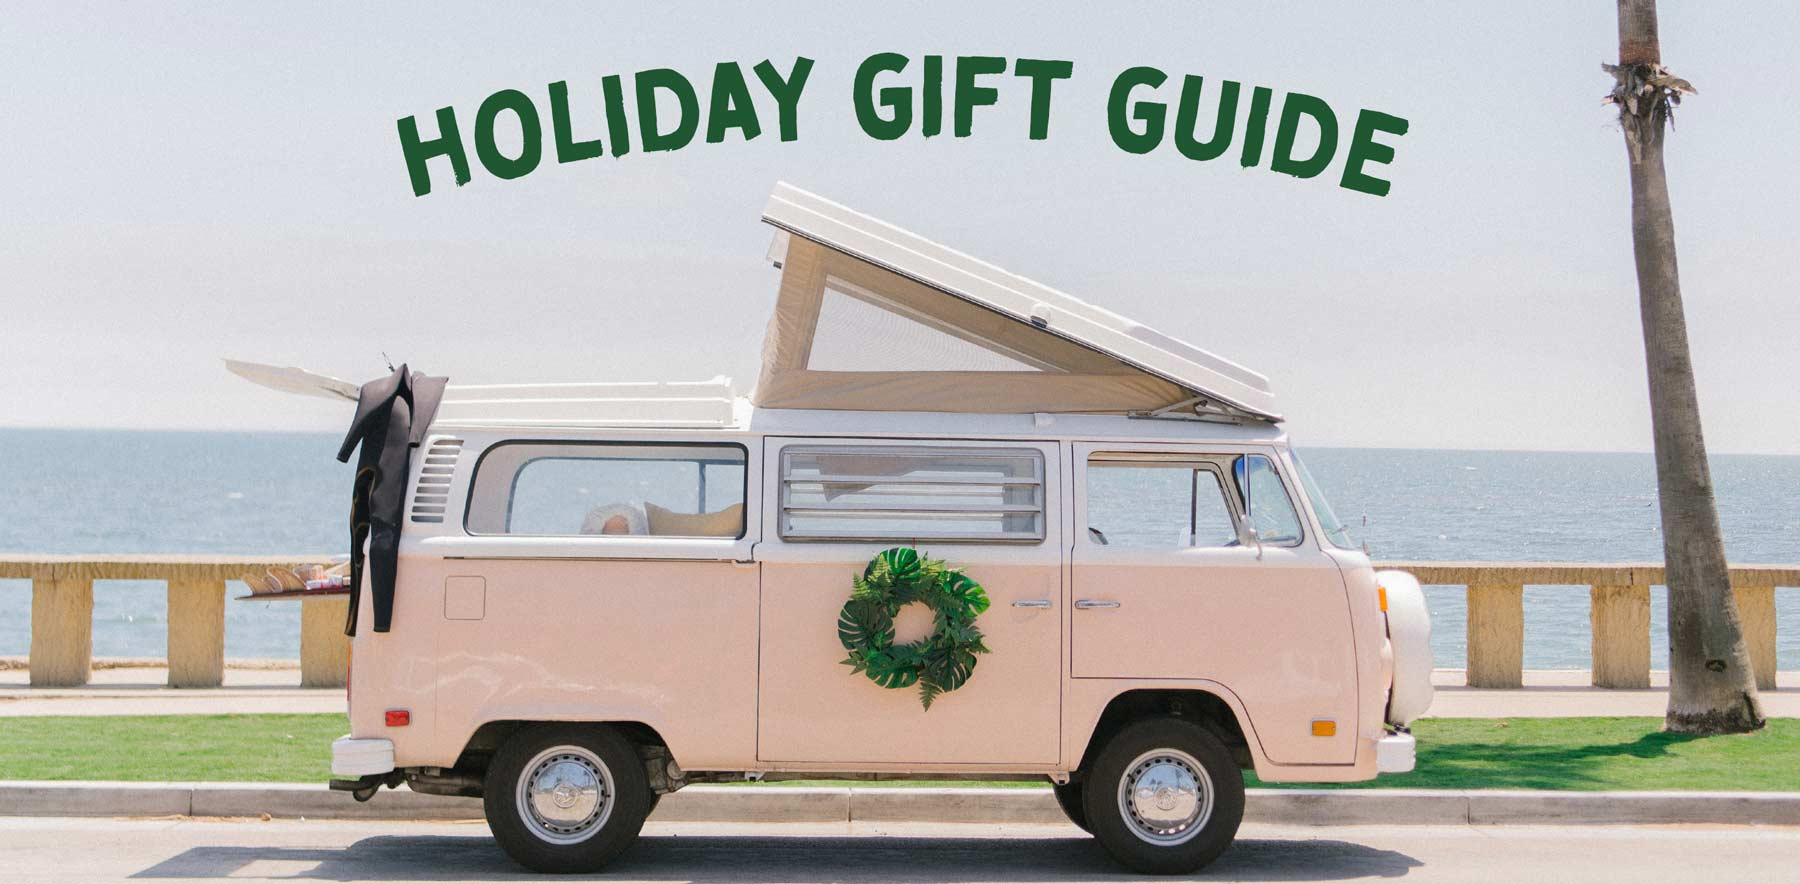 Pink van parked near the beach beside text of Holiday Gift Guide.